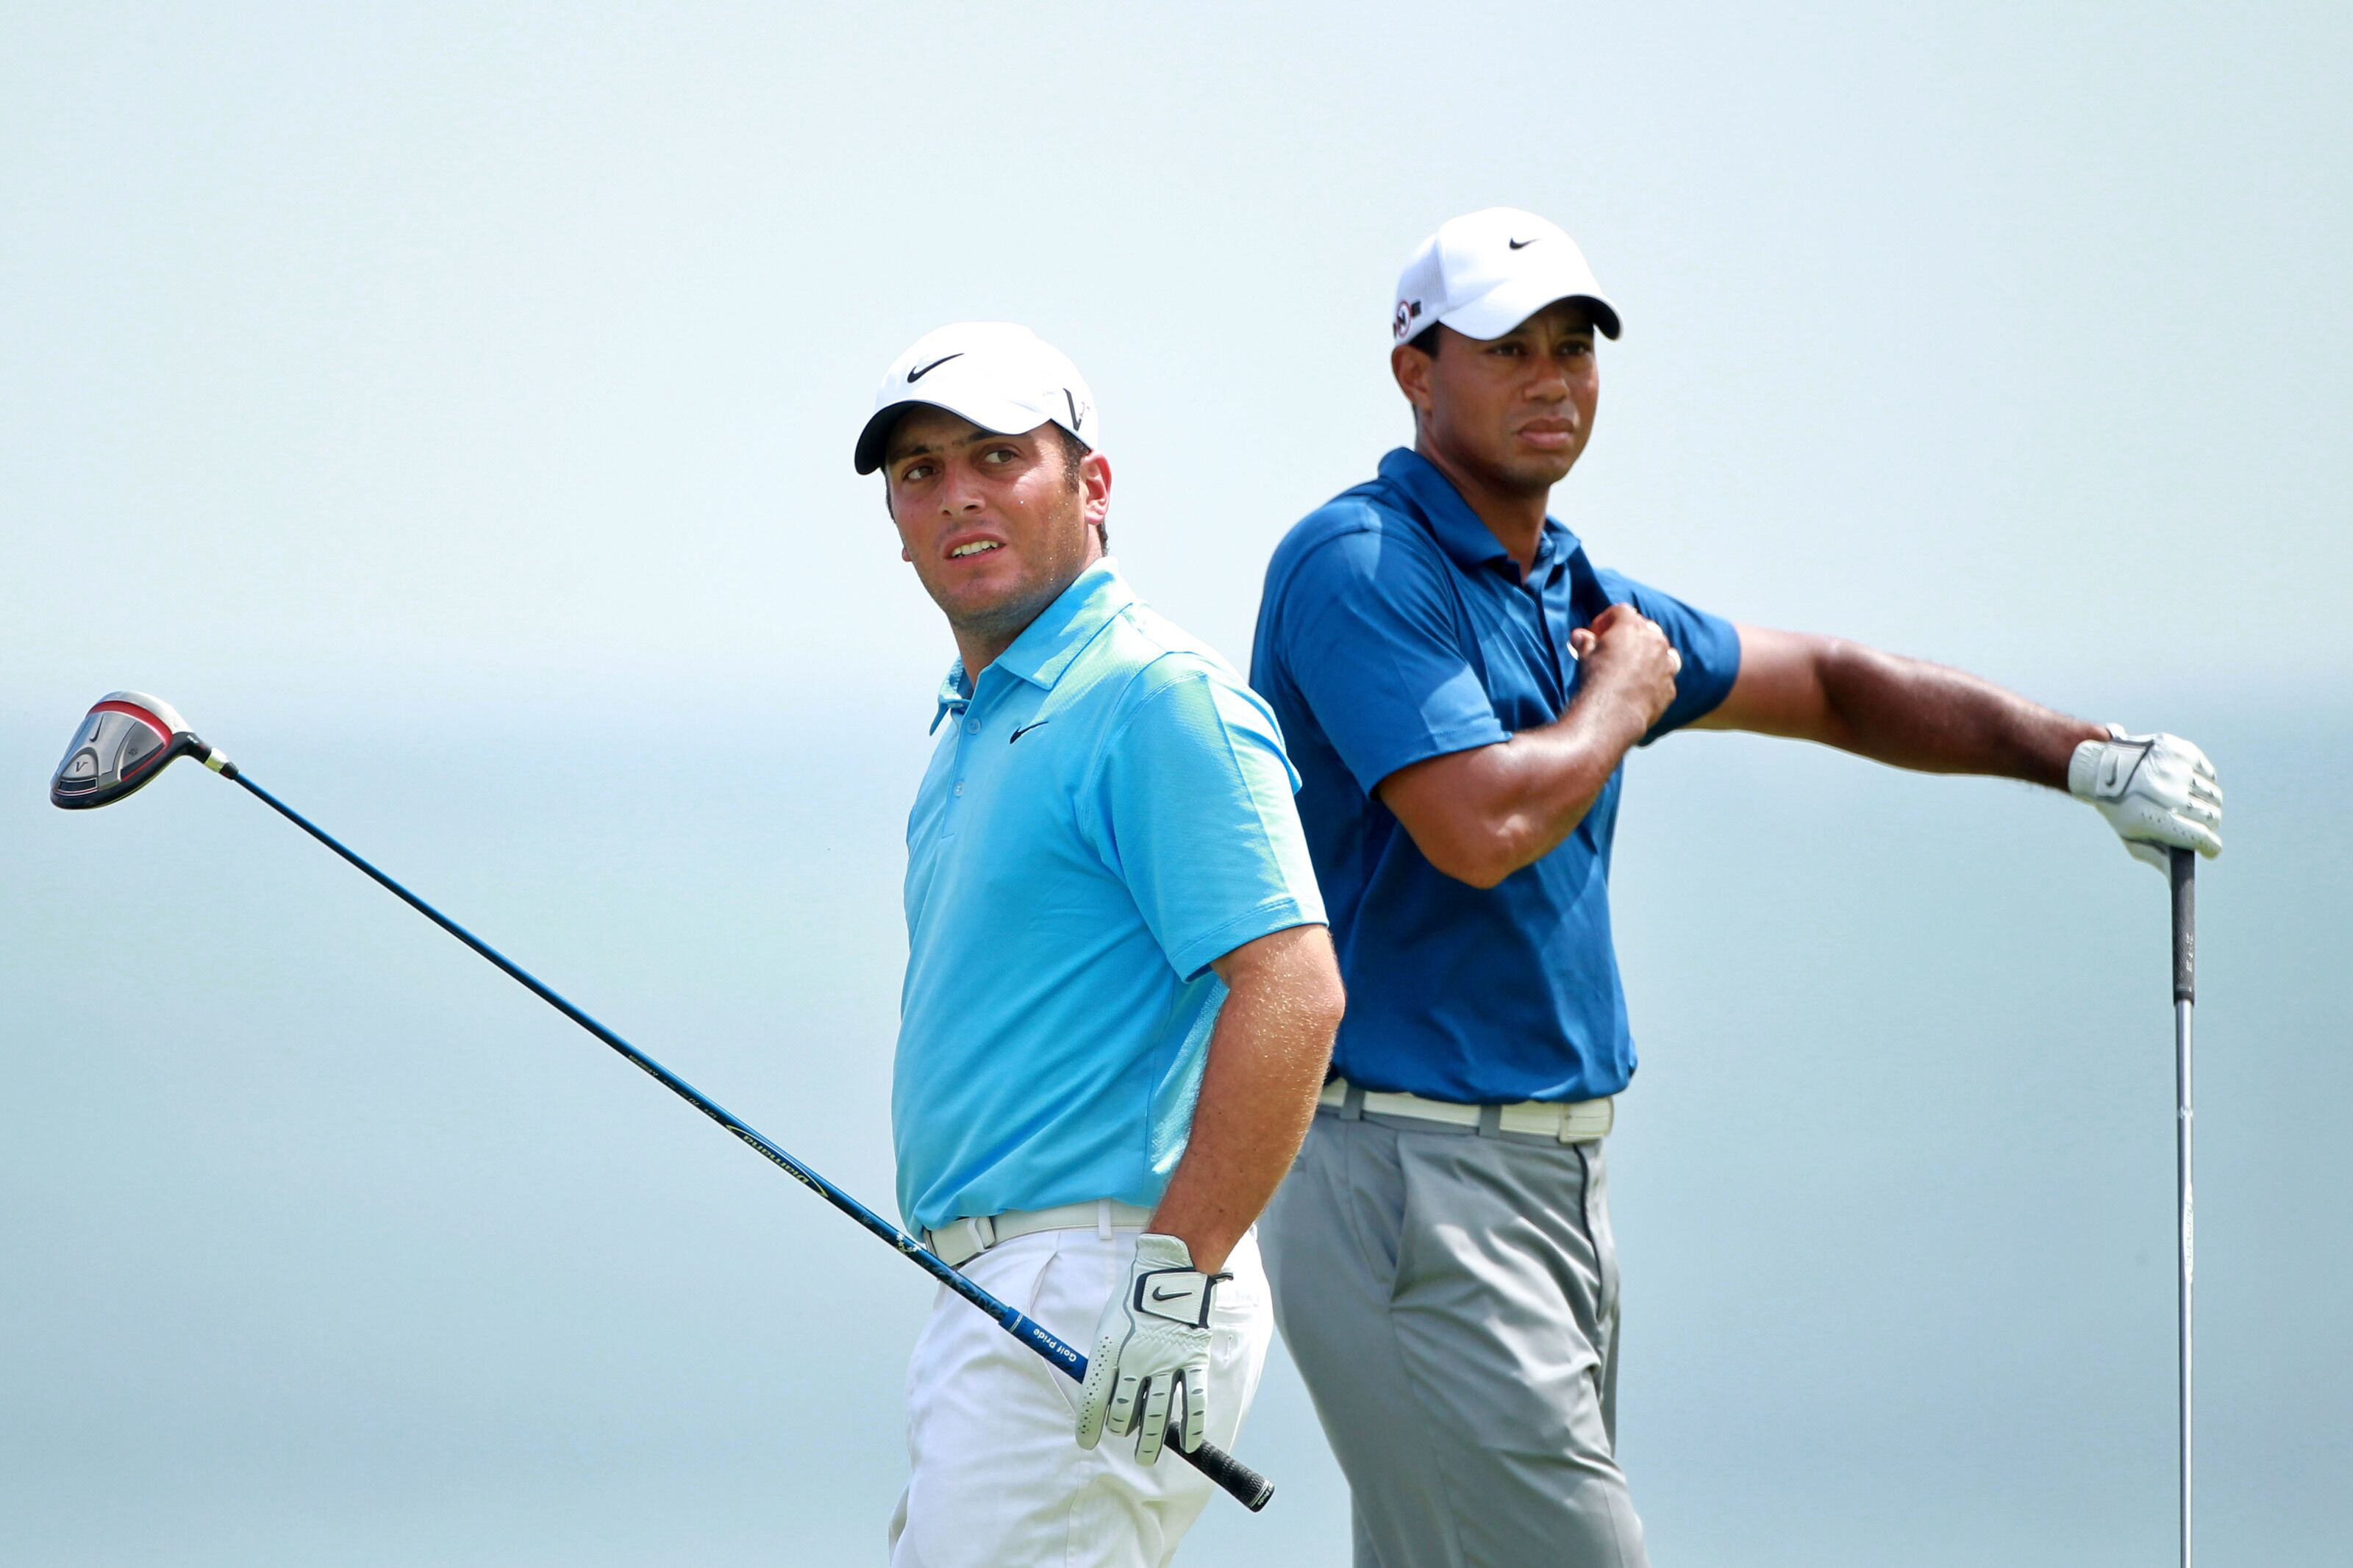 KOHLER, WI - AUGUST 14: (L-R) Francesco Molinari of Italy and Tiger Woods look on from the tee on the fifth hole during the third round of the 92nd PGA Championship on the Straits Course at Whistling Straits on August 14, 2010 in Kohler, Wisconsin. (Photo by Andrew Redington/Getty Images)